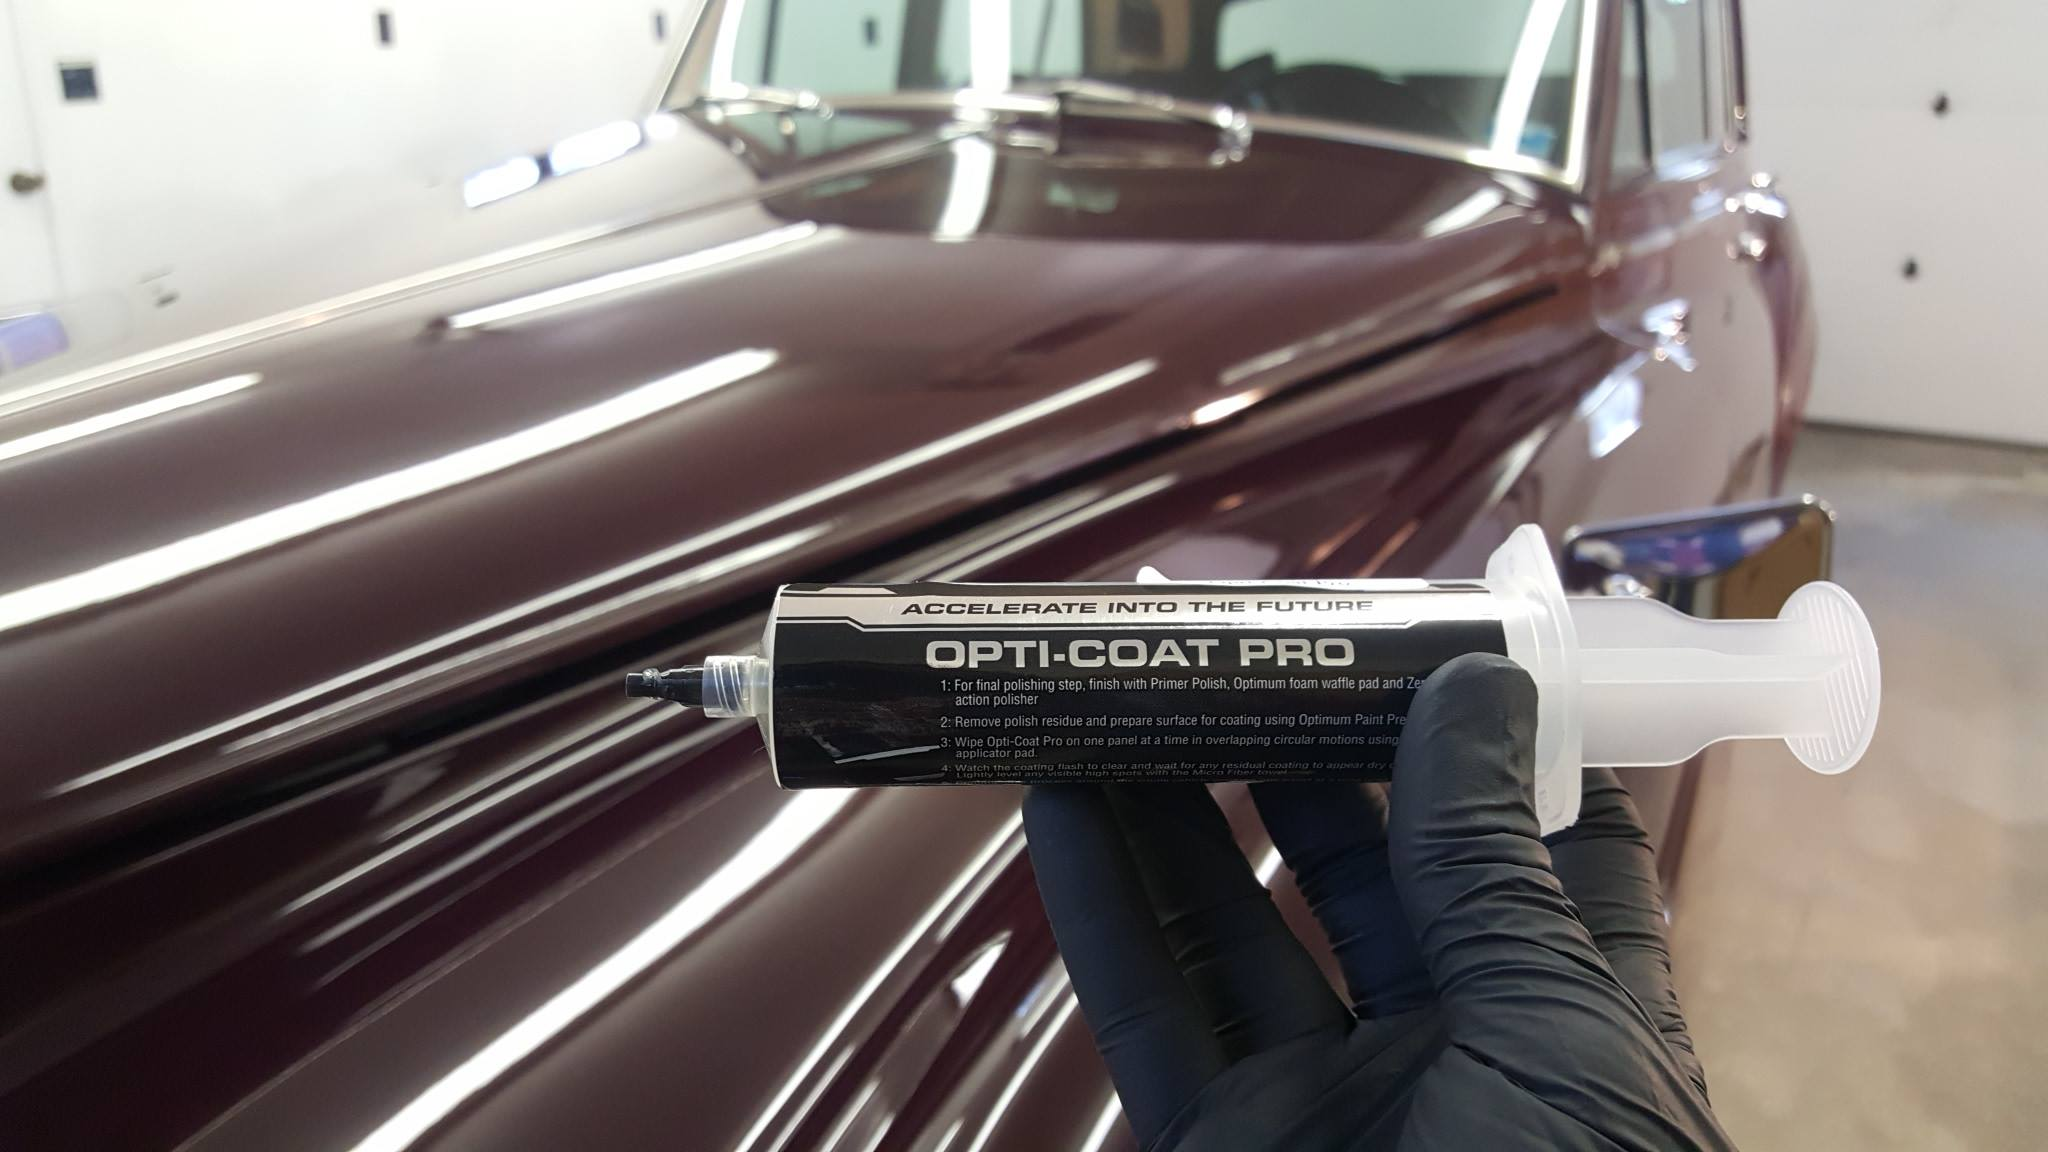 Opti-coat Pro From $ 900.00 - Permanent coating providing (9H) scratch resistance and protection from chemical damage from environmental impacts. Provides Lifetime protection with 5 year warranty